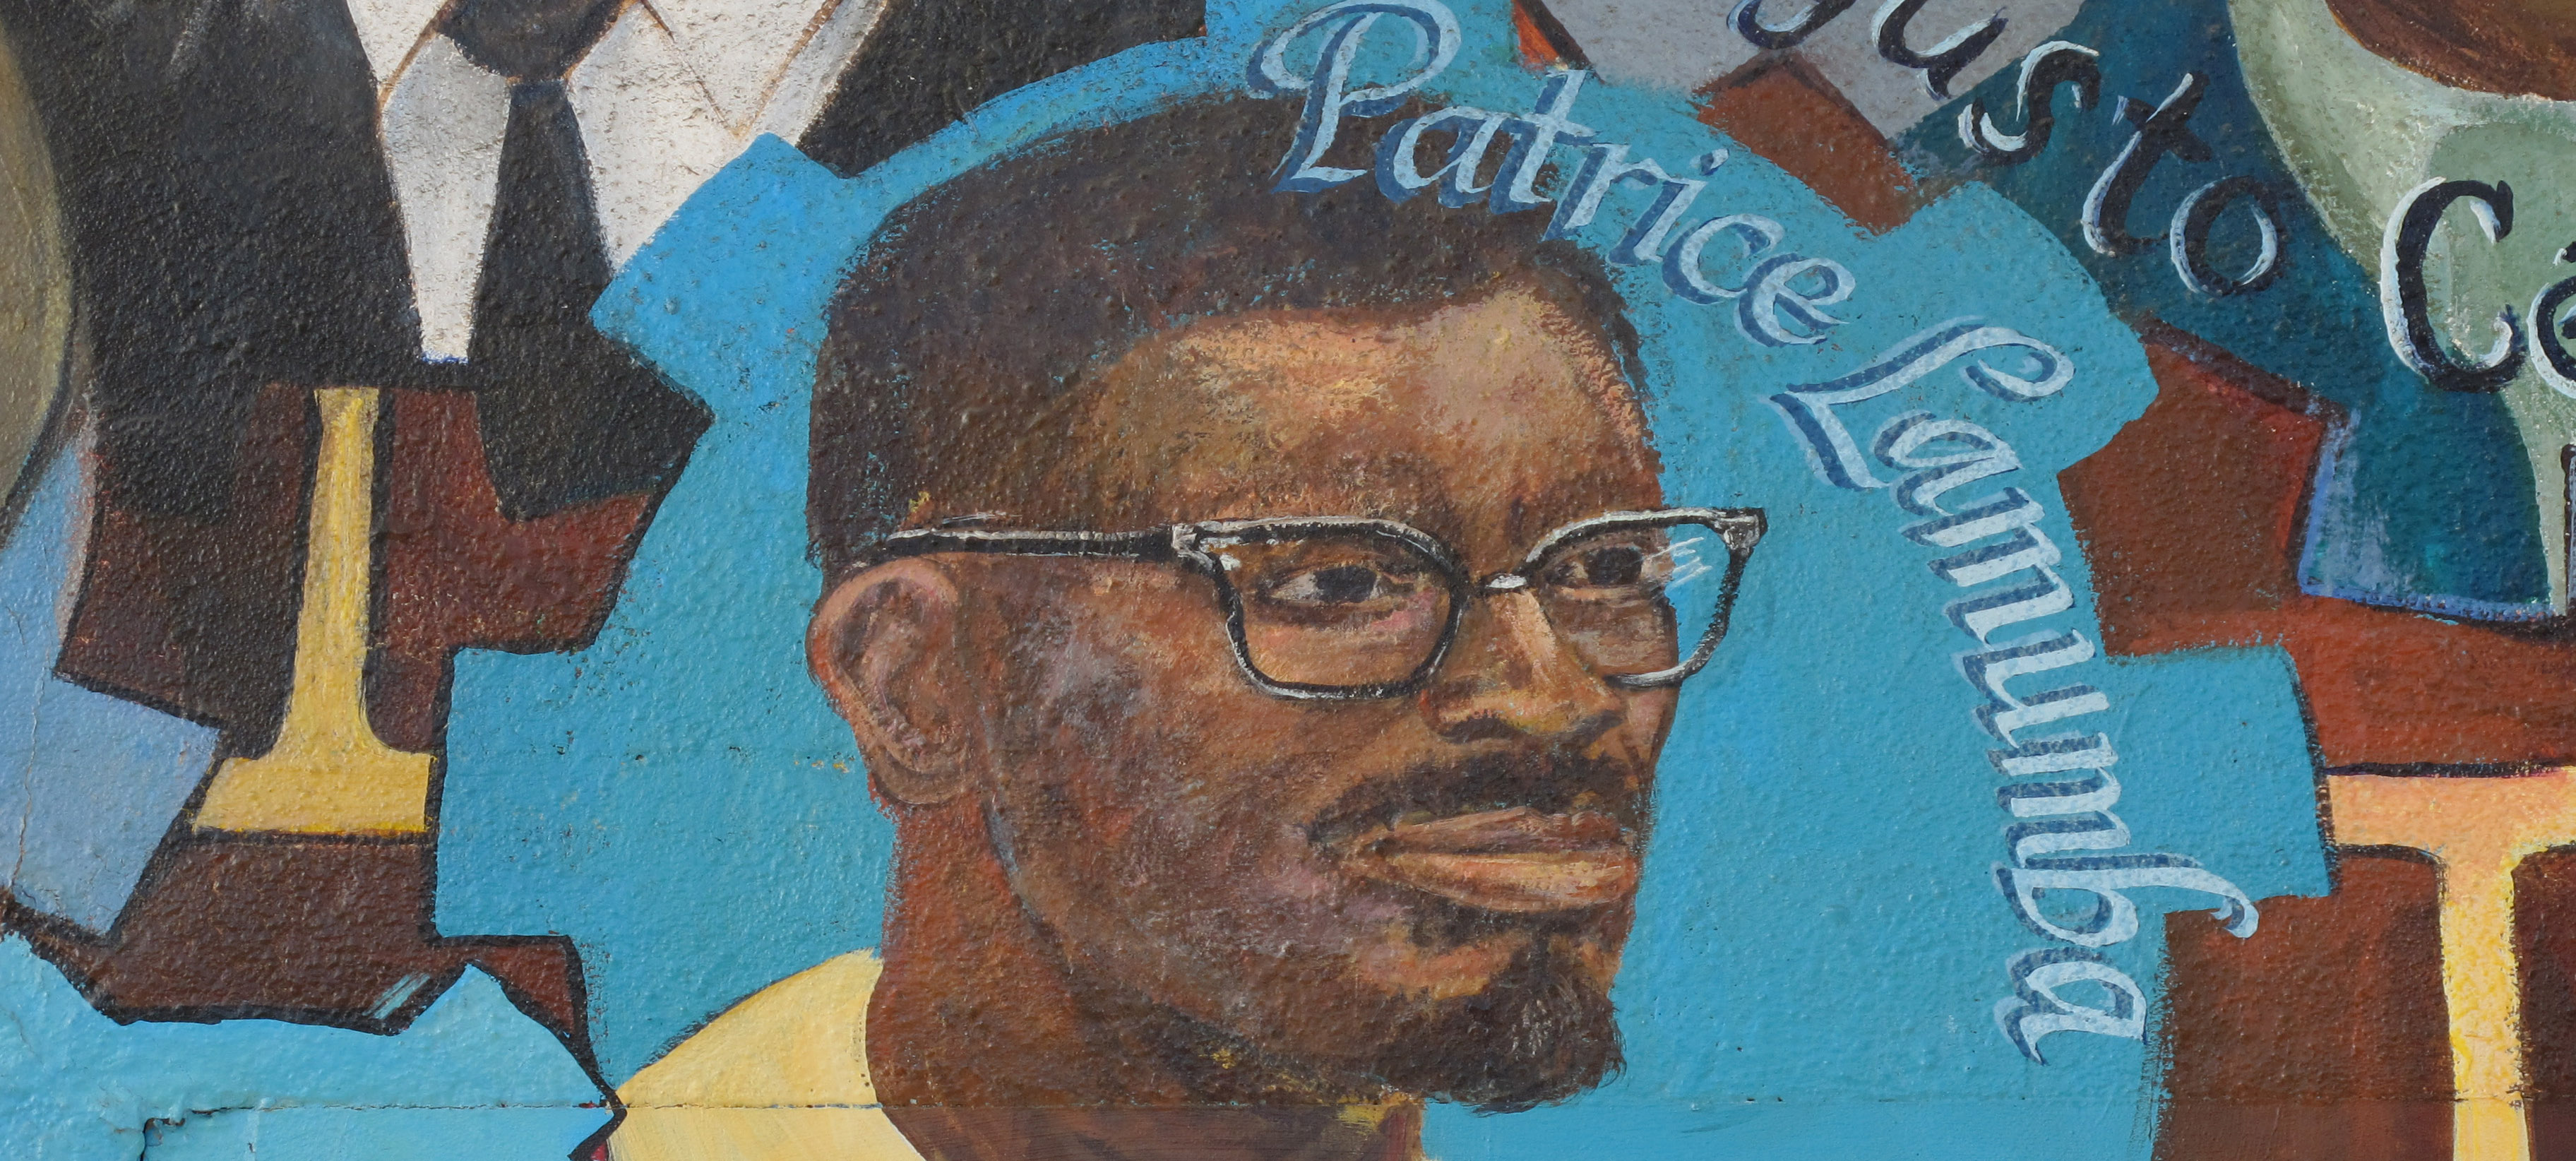 Figure 1: Mural of Patrice Lumumba, the DRC's short-lived independence leader. Image: Gary Stevens